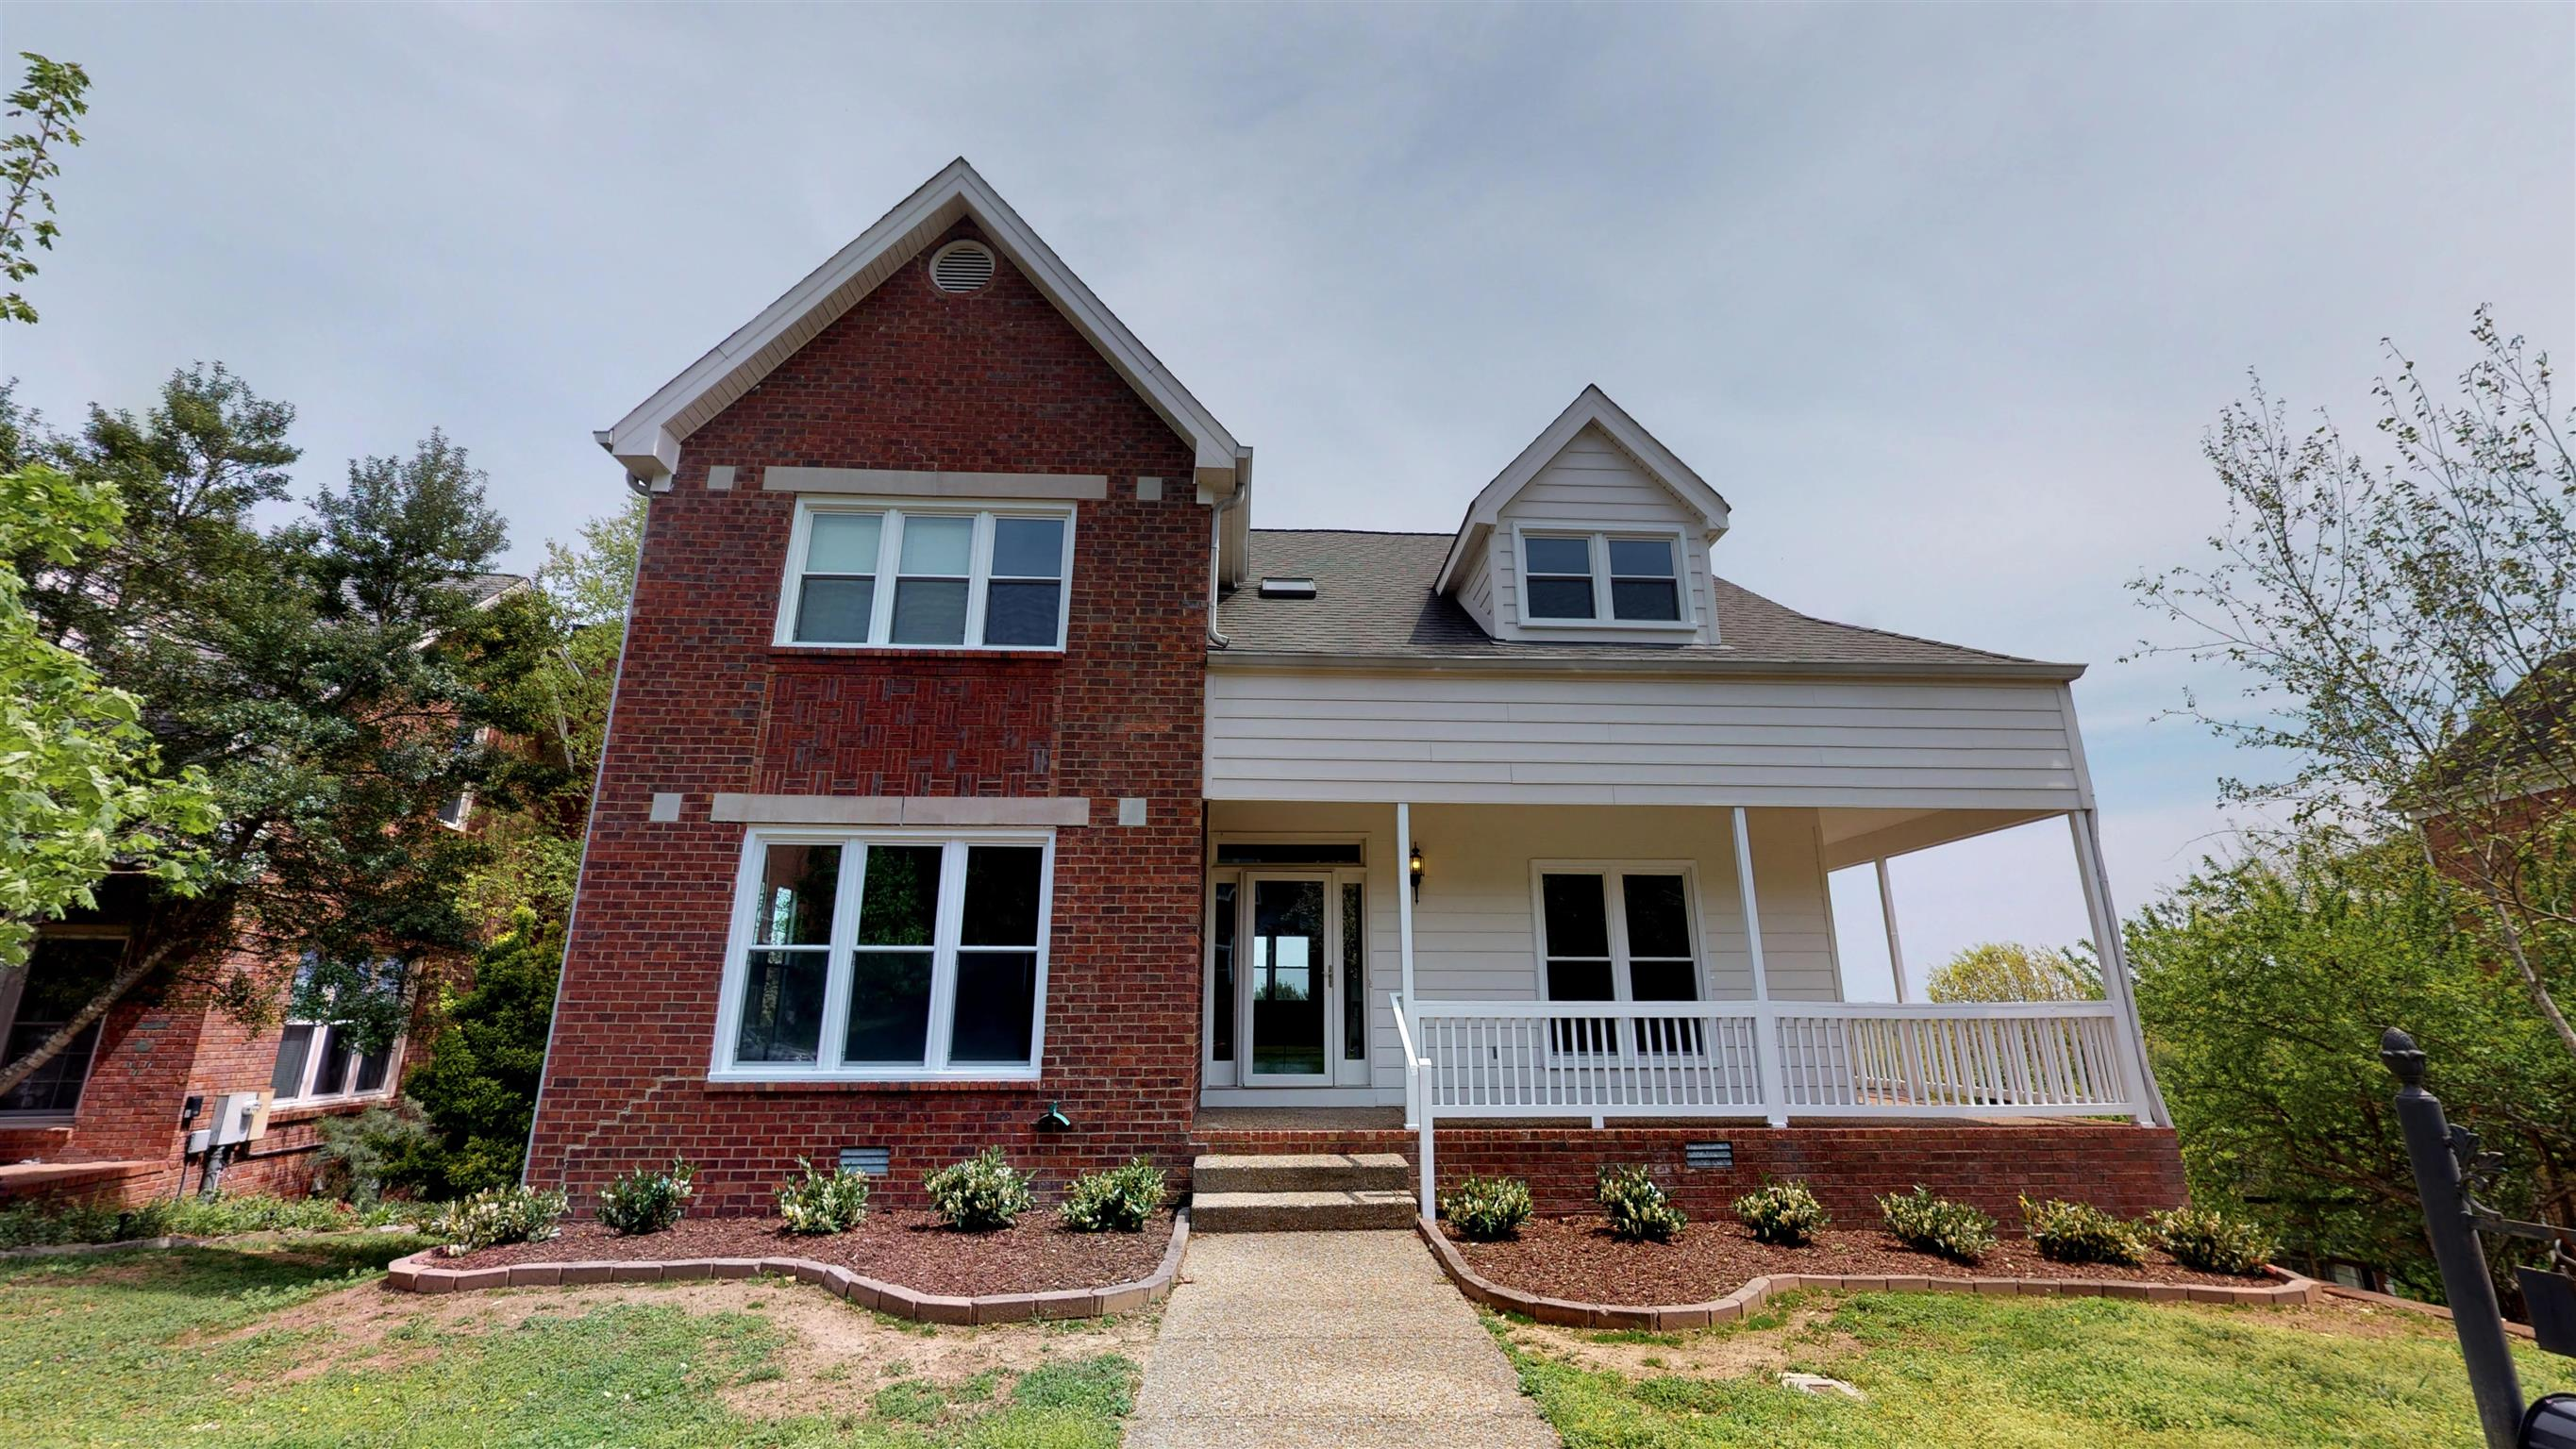 6316 Sweetgum Ln, Nashville, TN 37221 - Nashville, TN real estate listing